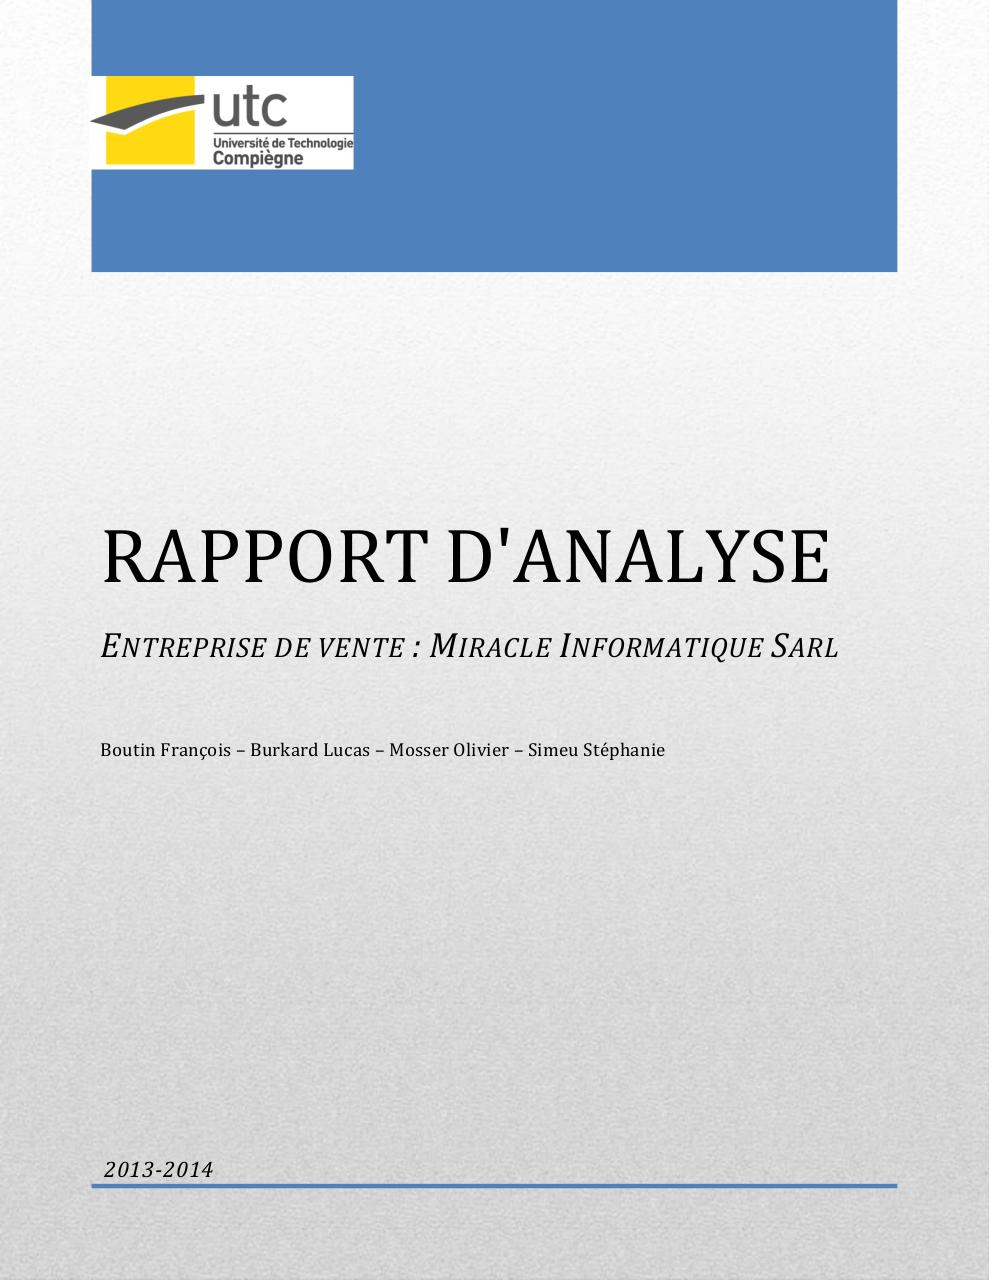 RAPPORT D'ANALYSE NF17.pdf - page 1/27